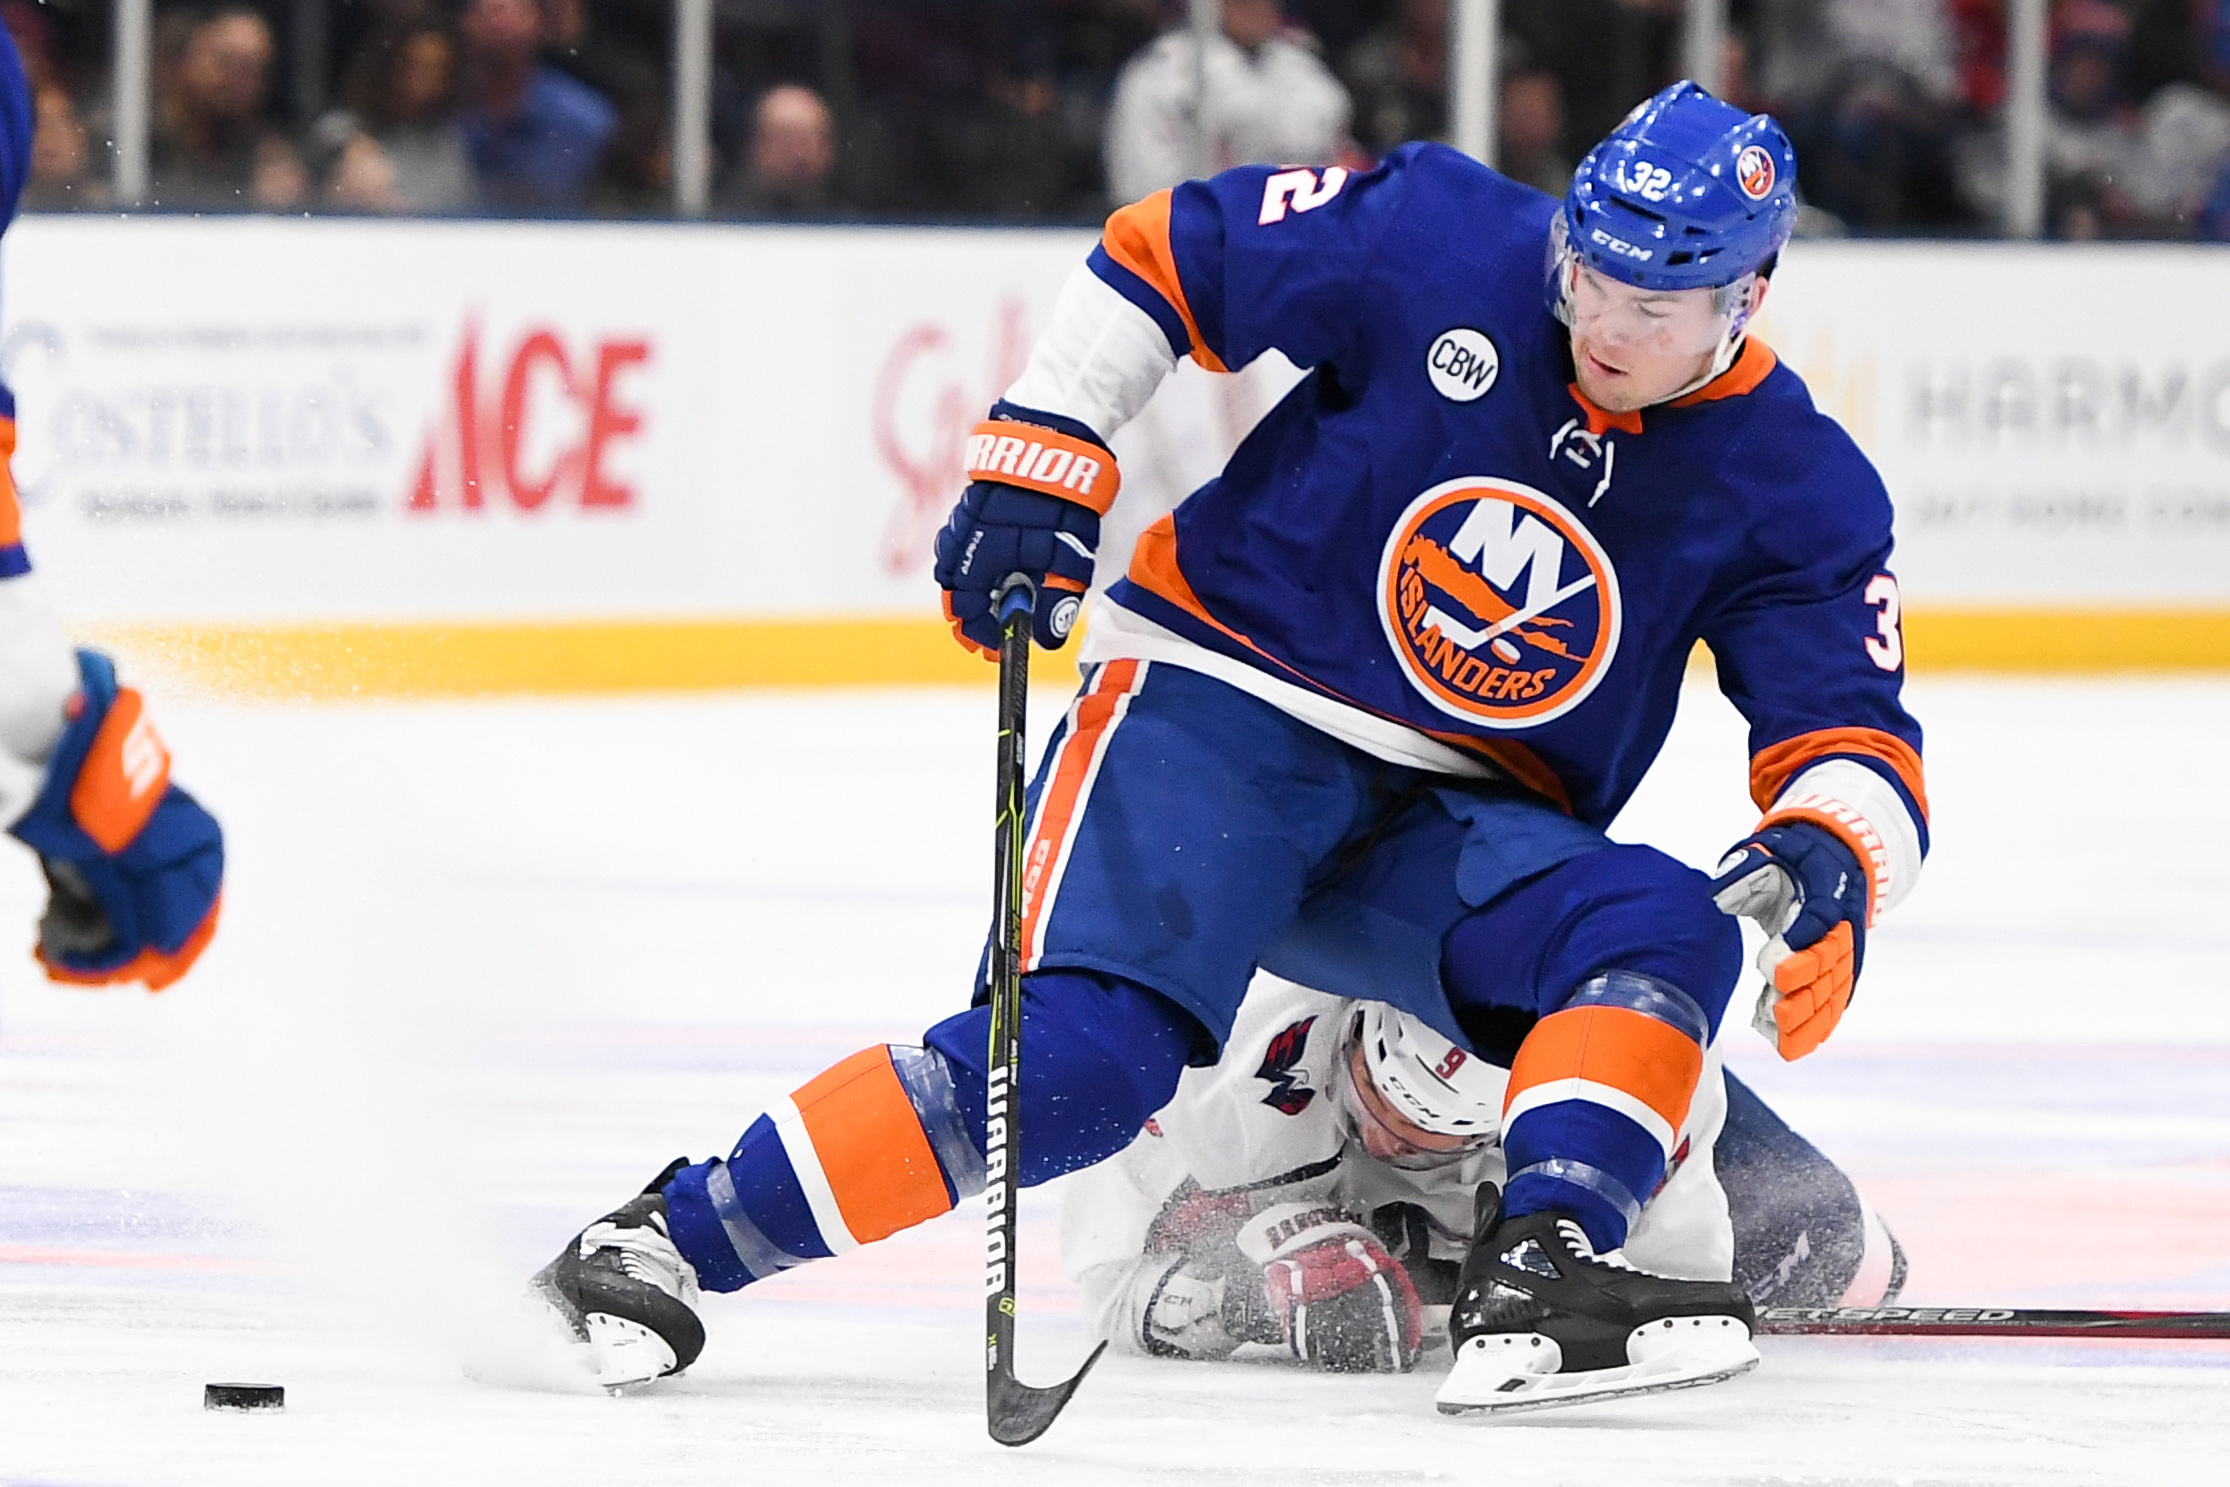 Mar 1, 2019; Uniondale, NY, USA; Washington Capitals defenseman Dmitry Orlov (9) and New York Islanders left wing Ross Johnston (32) battle for the puck during the third period at Nassau Veterans Memorial Coliseum. Mandatory Credit: Dennis Schneidler-USA TODAY Sports